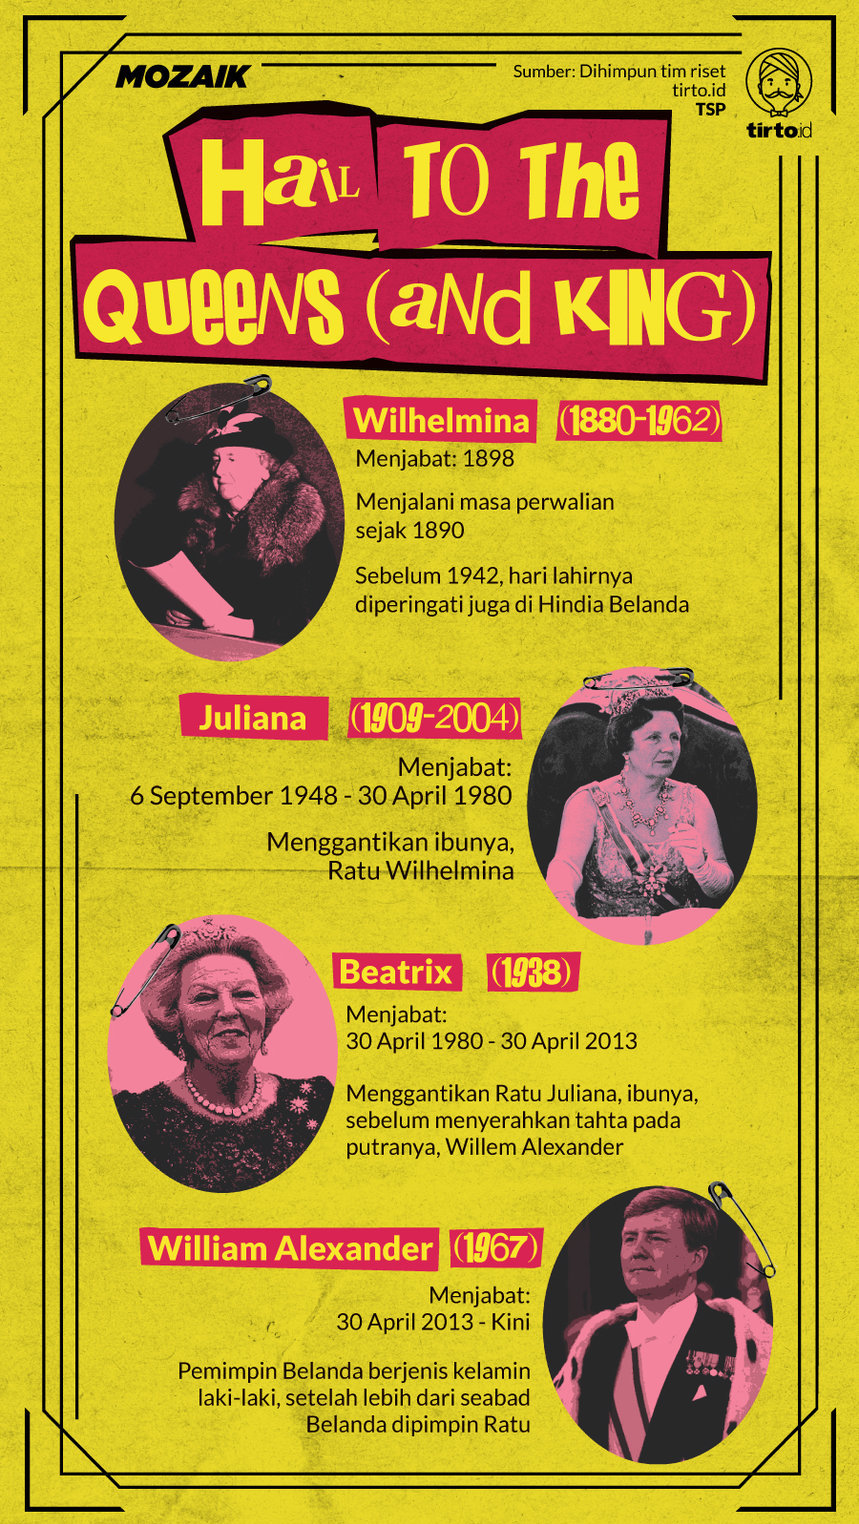 Infografik Mozaik Hail To the Queens